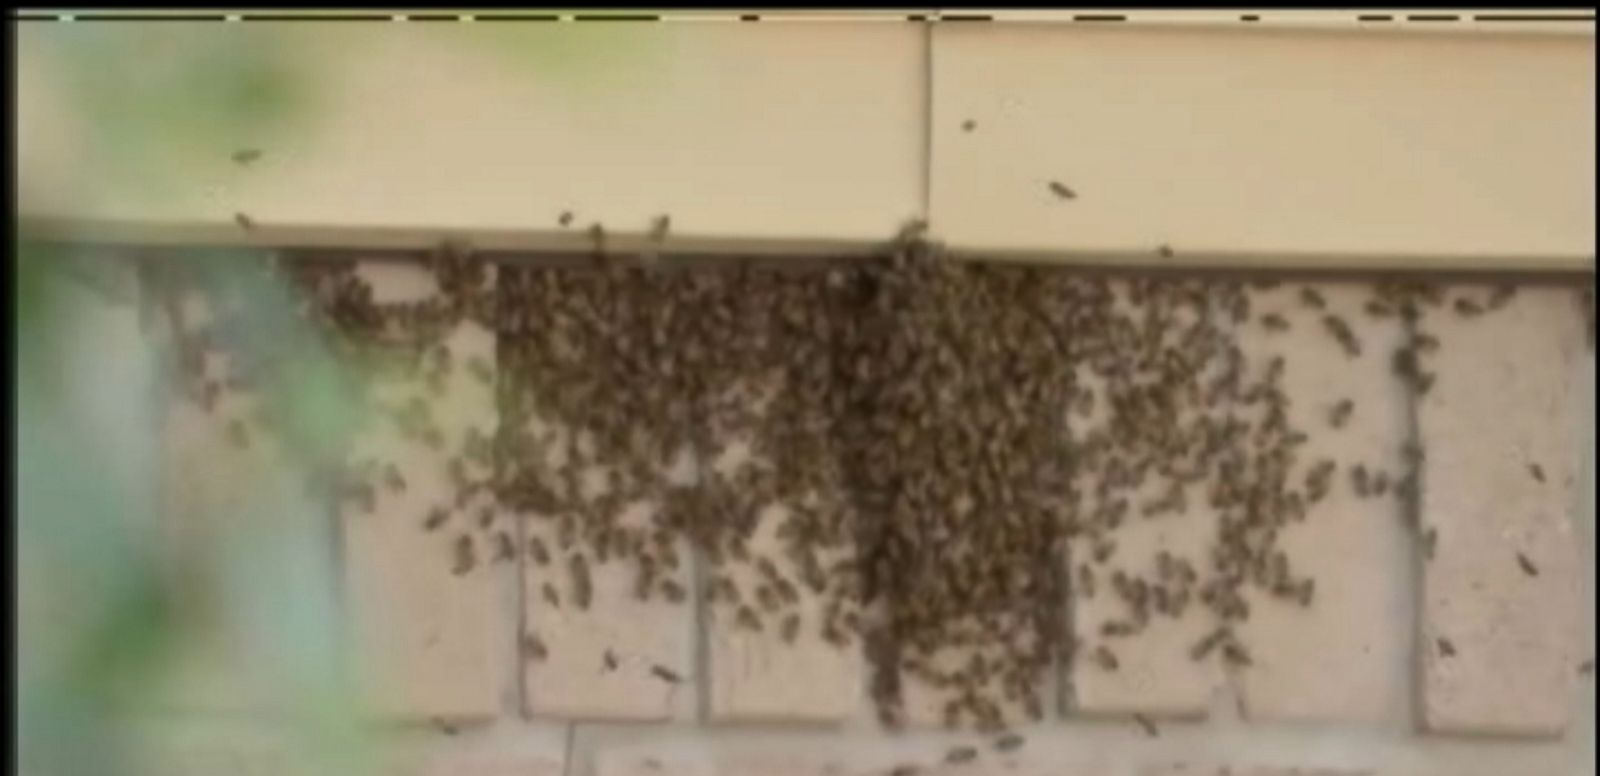 VIDEO: The aggressive colony of bees was exterminated, but a second colony continues to swarm around a vacant home across the street.